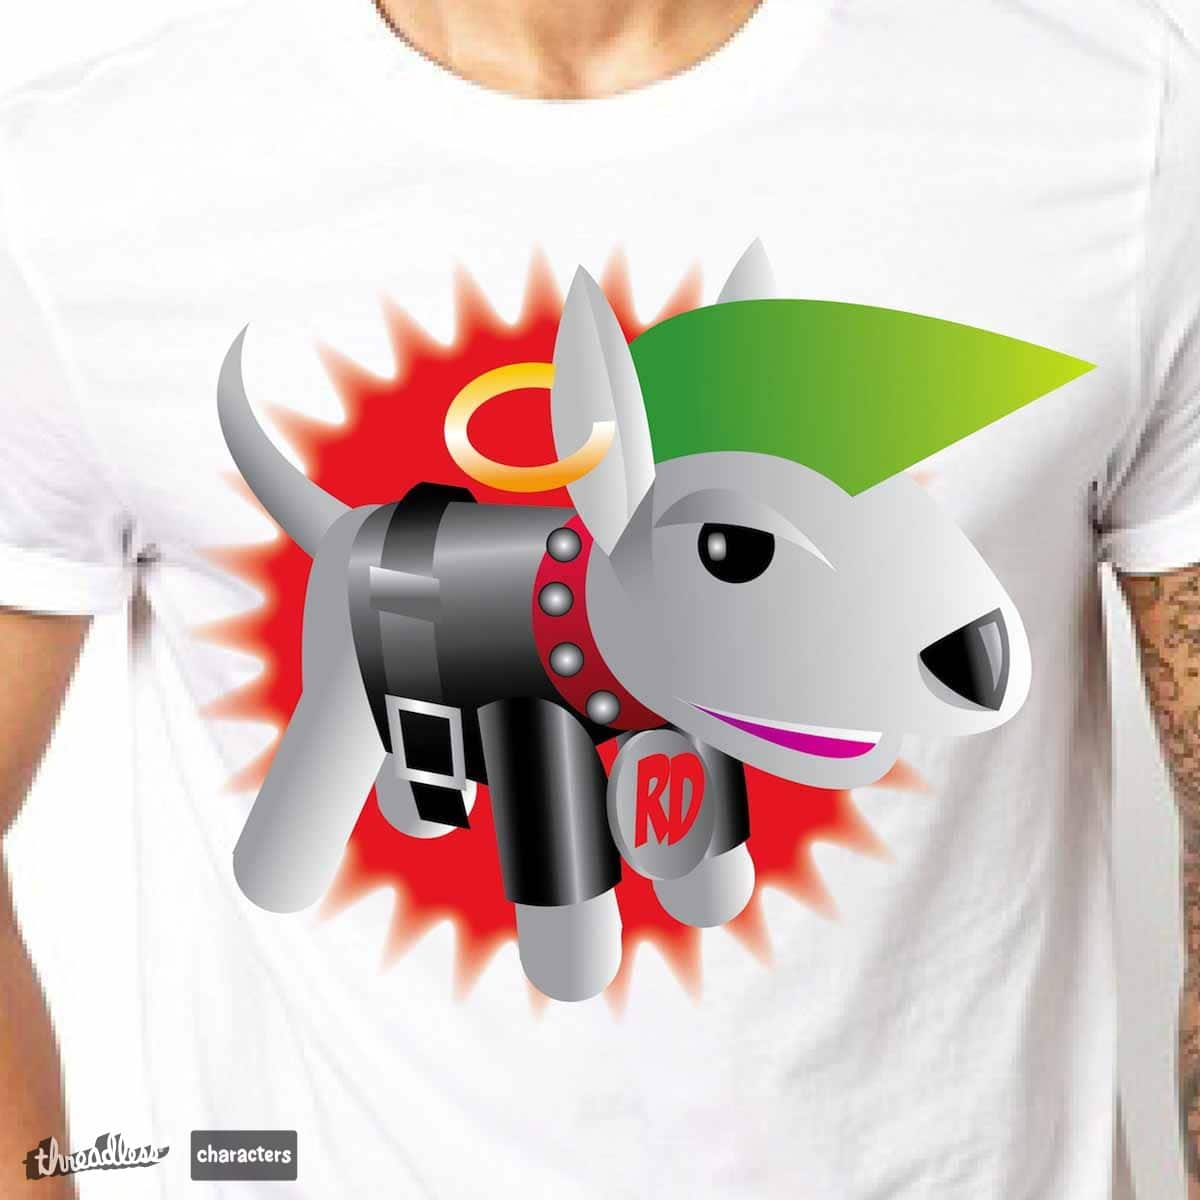 Rebel Dog by redskulz on Threadless